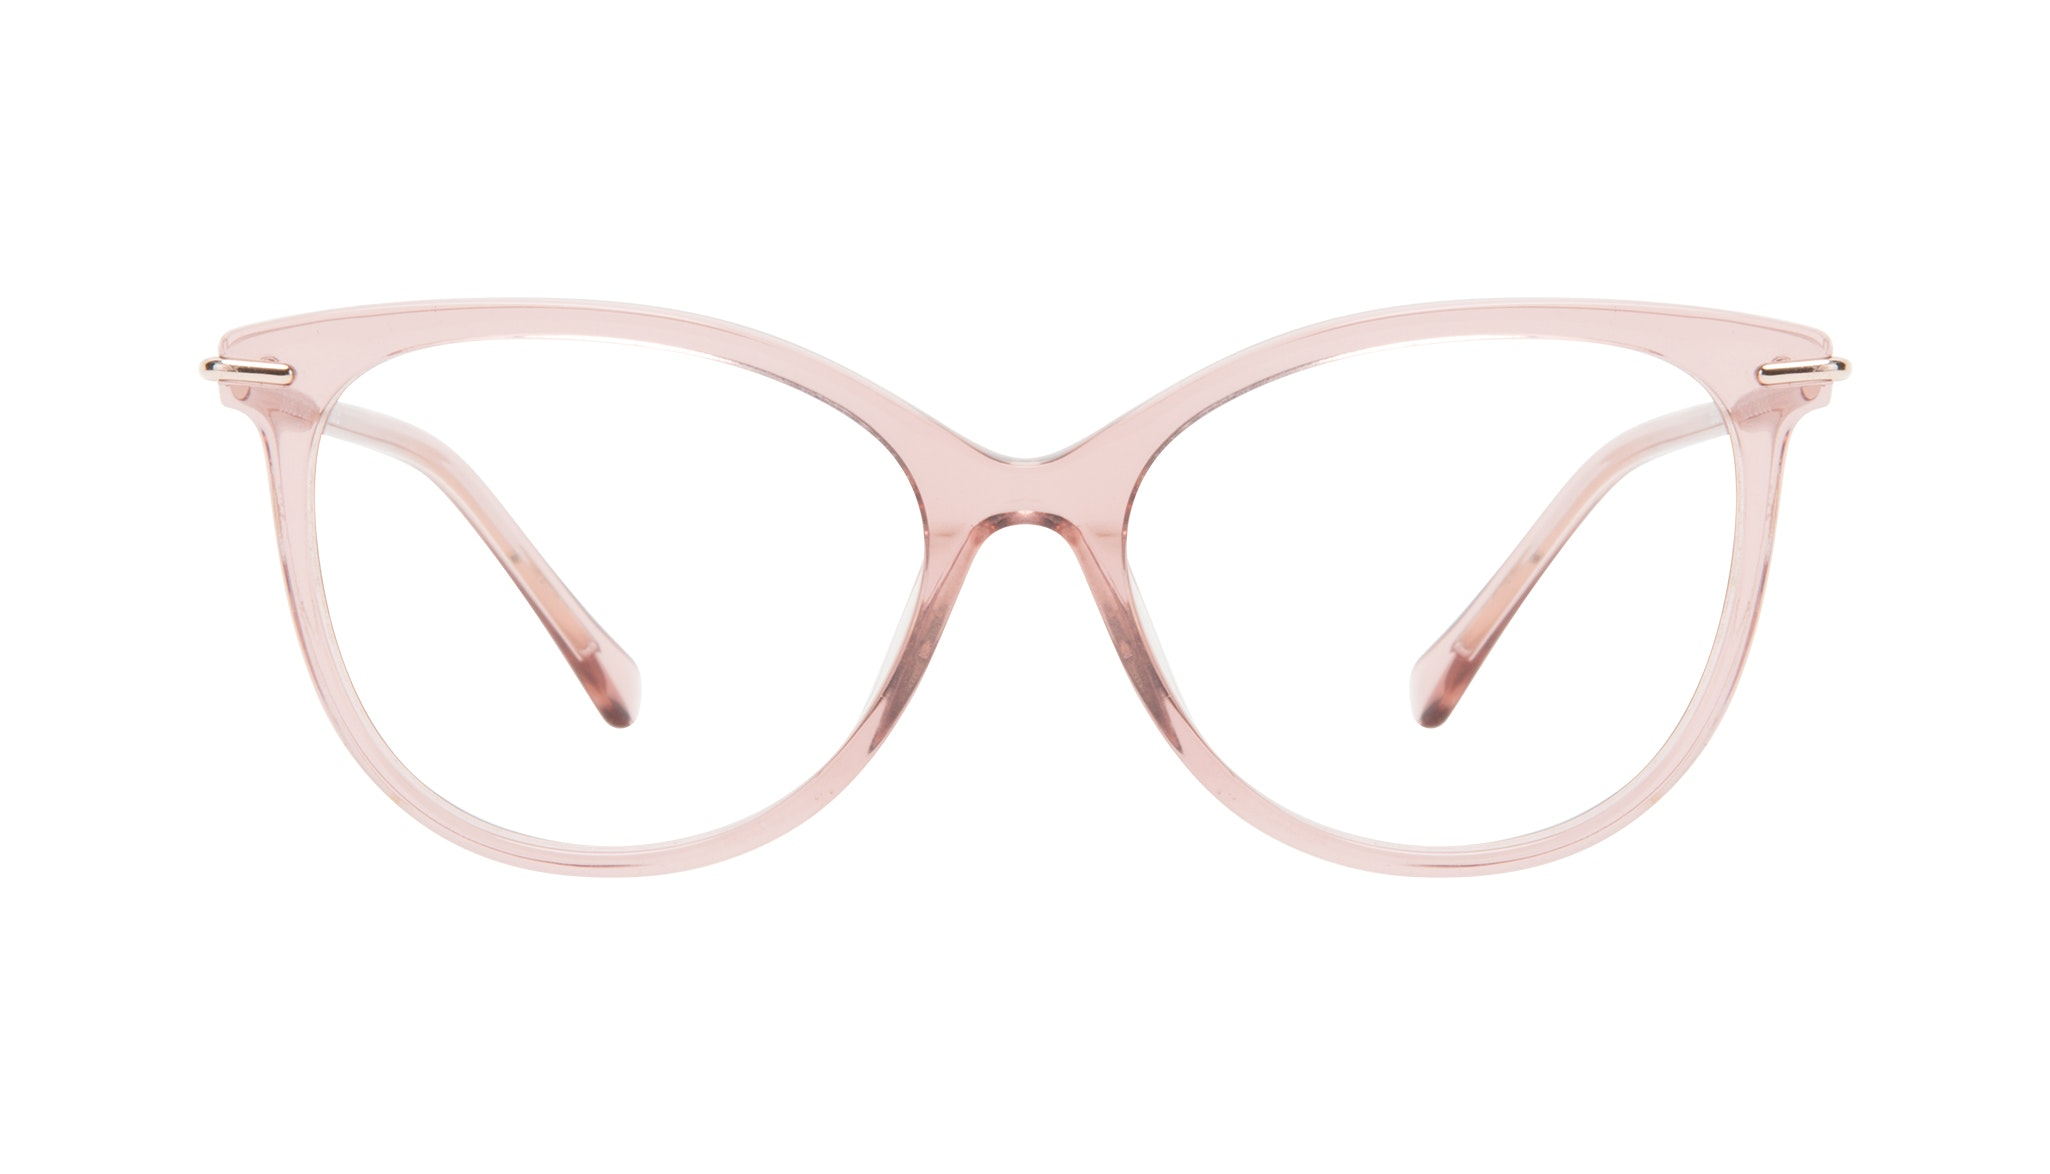 Affordable Fashion Glasses Round Eyeglasses Women Sublime Rose Front